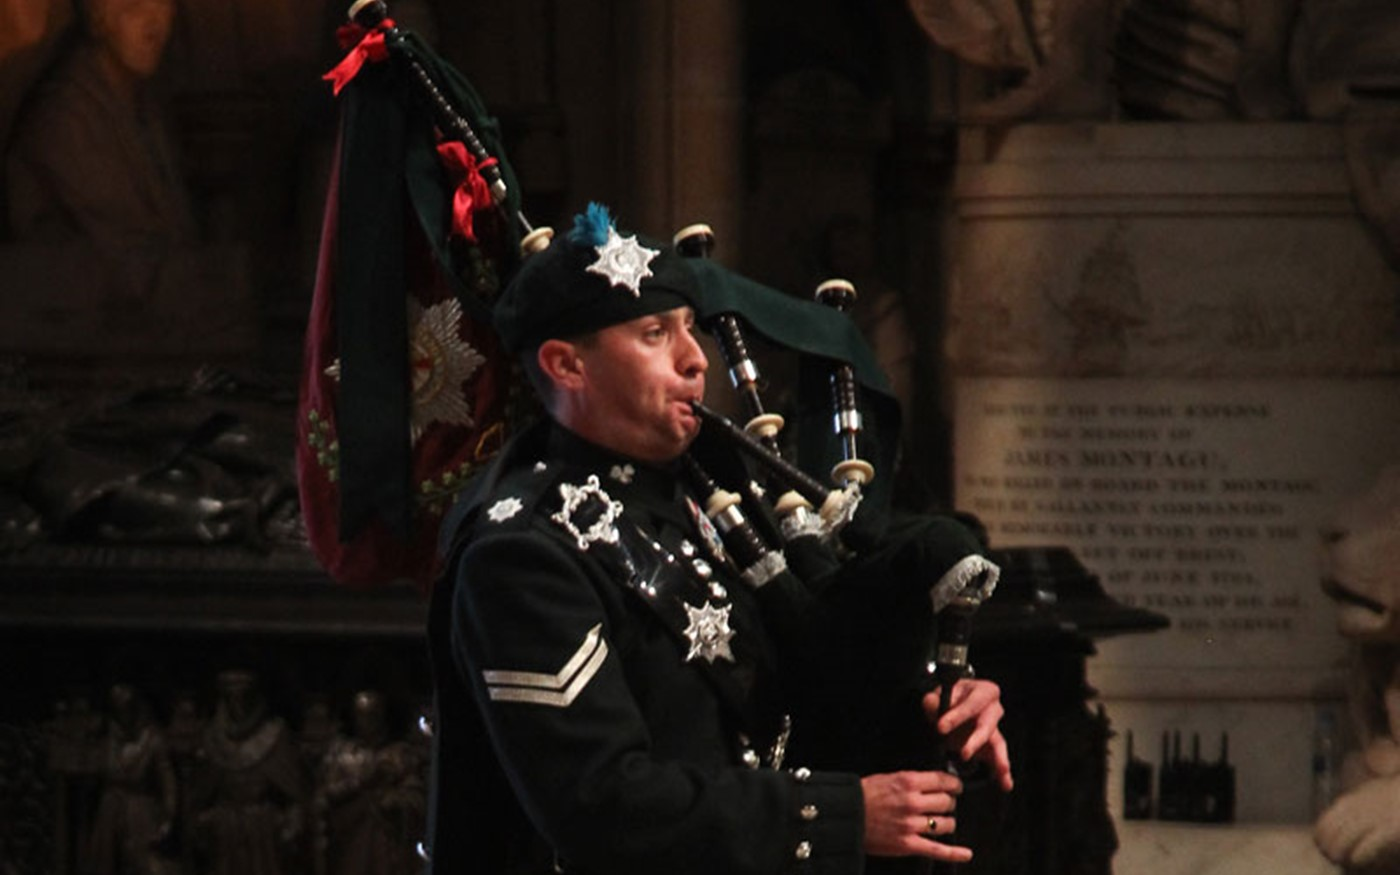 Lance Corporal Ritchie Spence, Irish Guards, plays Flowers of the Forest